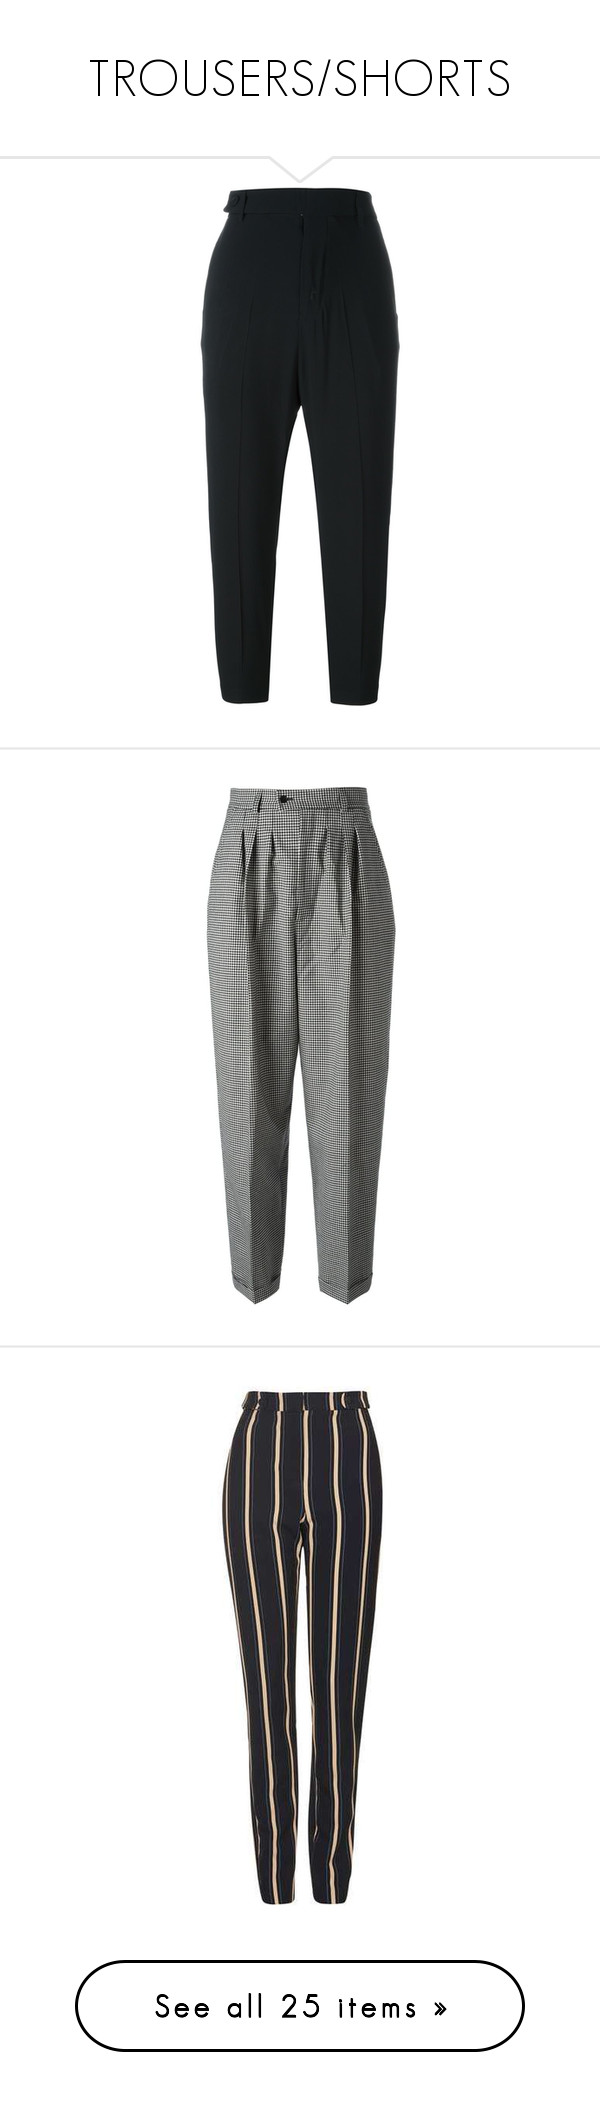 """""""TROUSERS/SHORTS"""" by millieparkerrr ❤ liked on Polyvore featuring pants, capris, black, peg leg pants, high waisted cropped pants, rick owens, high rise trousers, cropped pants, trousers and bottoms"""